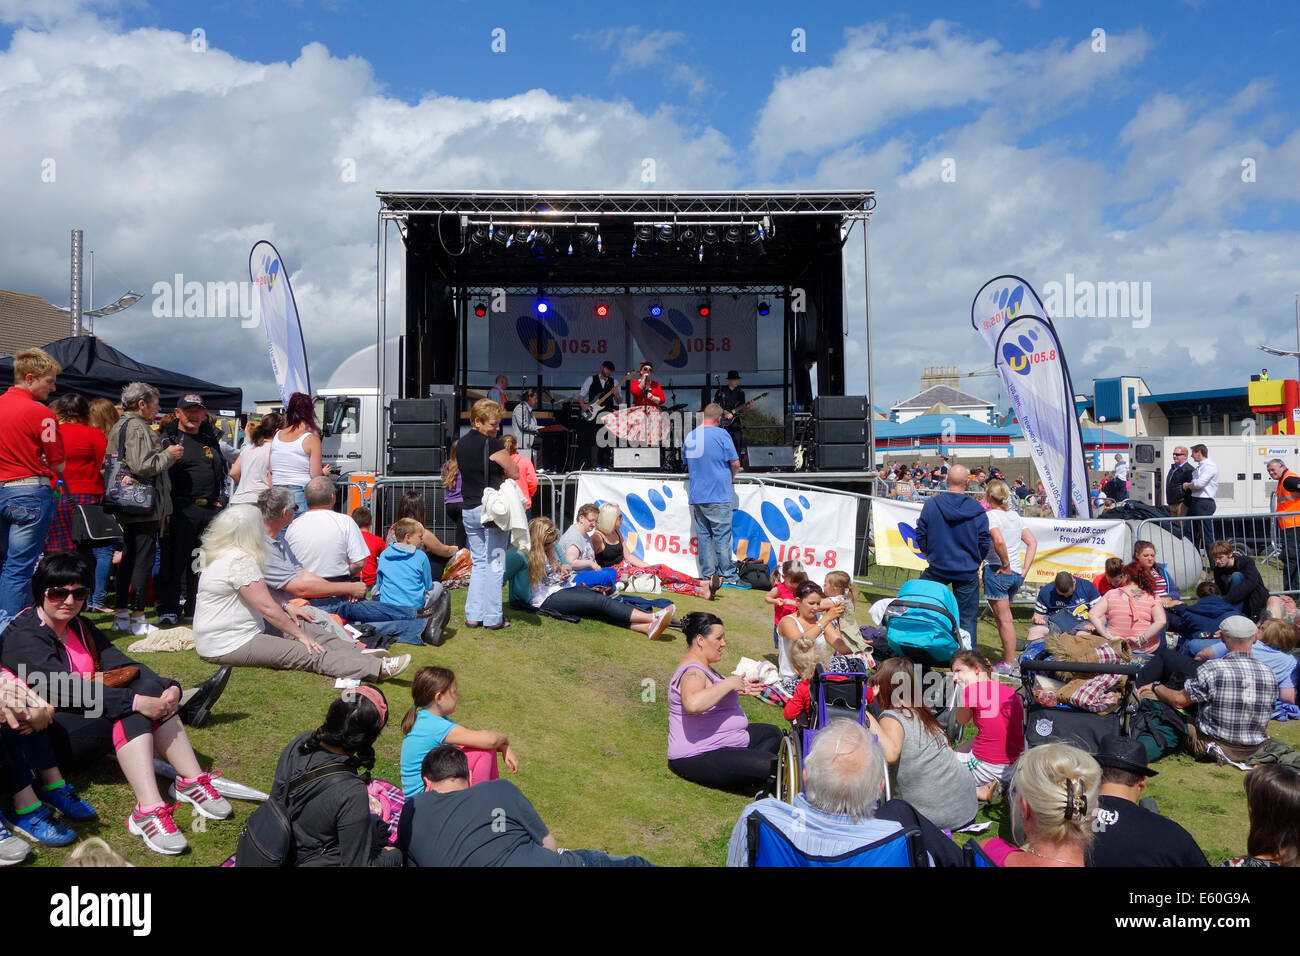 Newcastle, Co. Down, Northern Ireland, UK. 9th August 2014. Festival of Flight. Kaz Hawkins provides entertainment - Stock Image